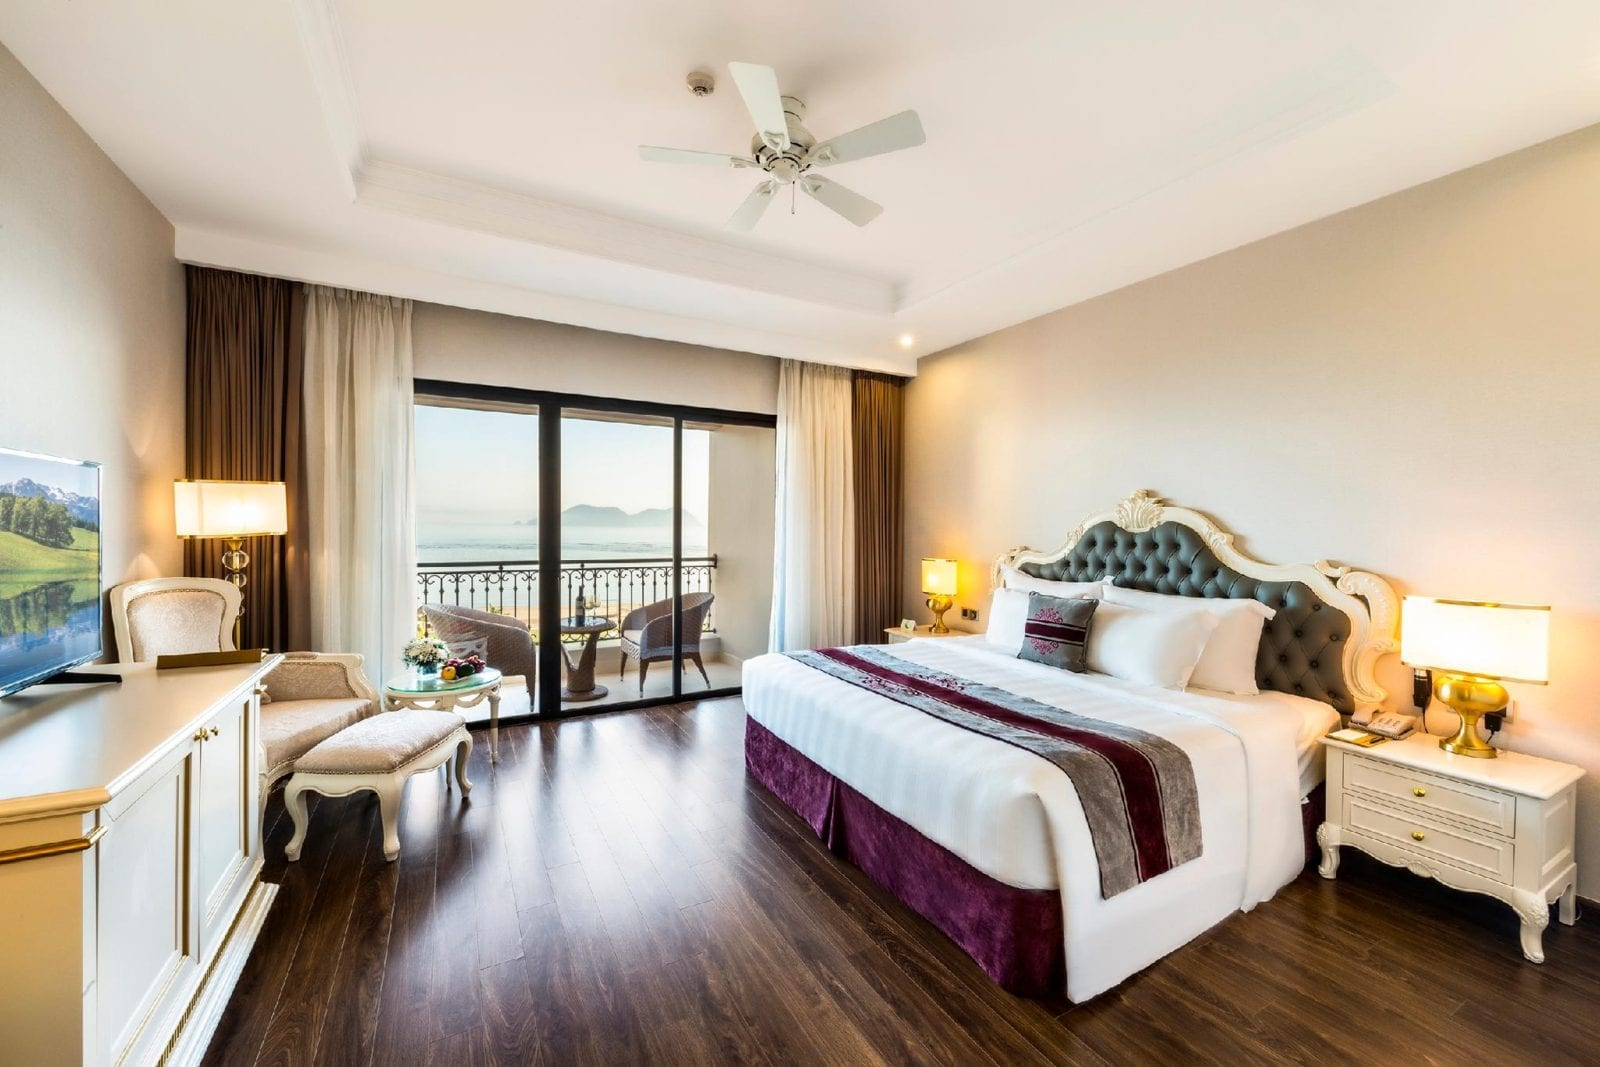 Room at Vinpearl Discovery Cua Hoi